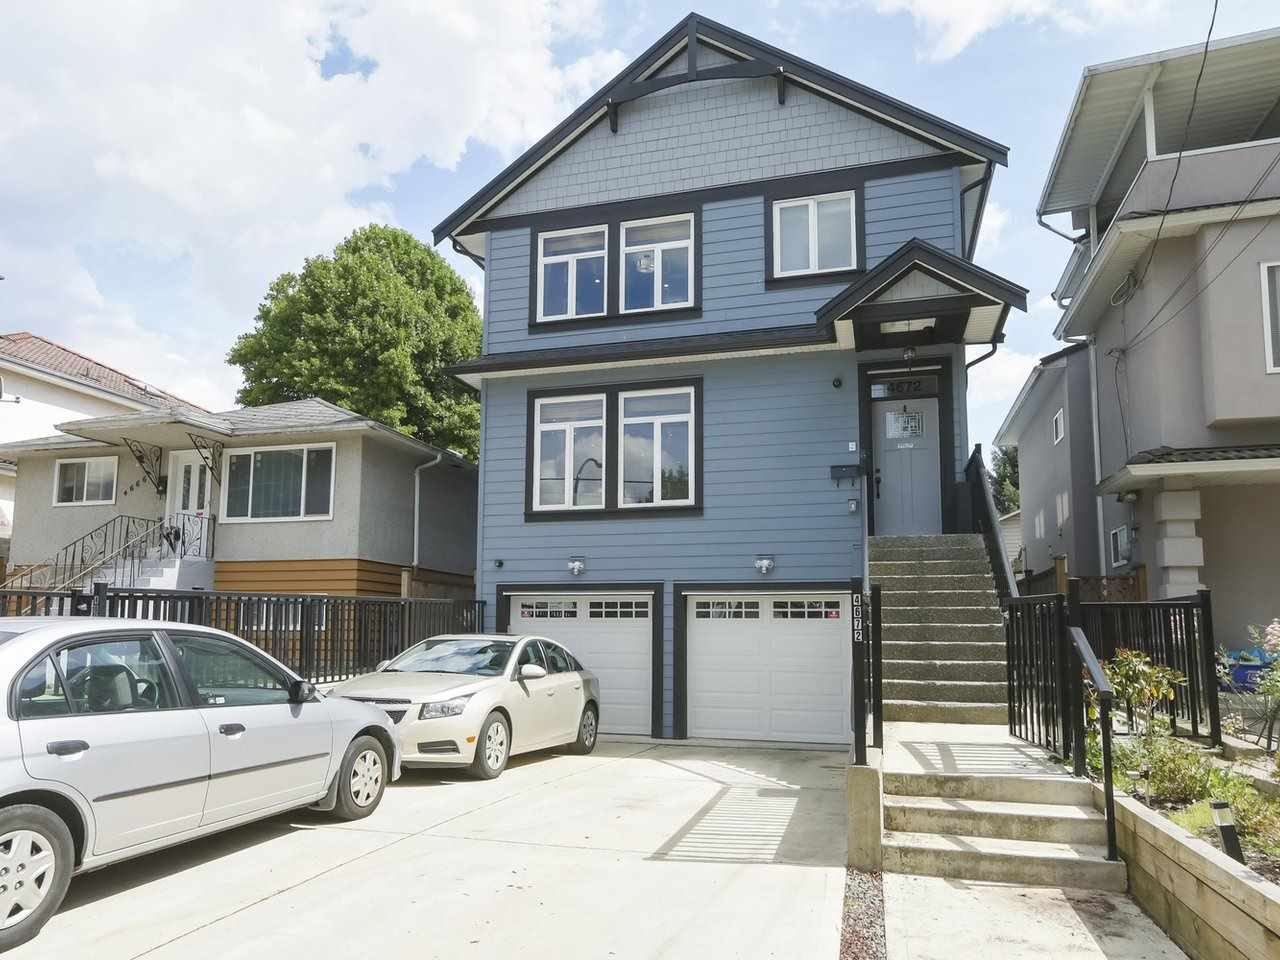 Removed: 4672 Clarendon Street, Vancouver, BC - Removed on 2019-08-21 06:30:19